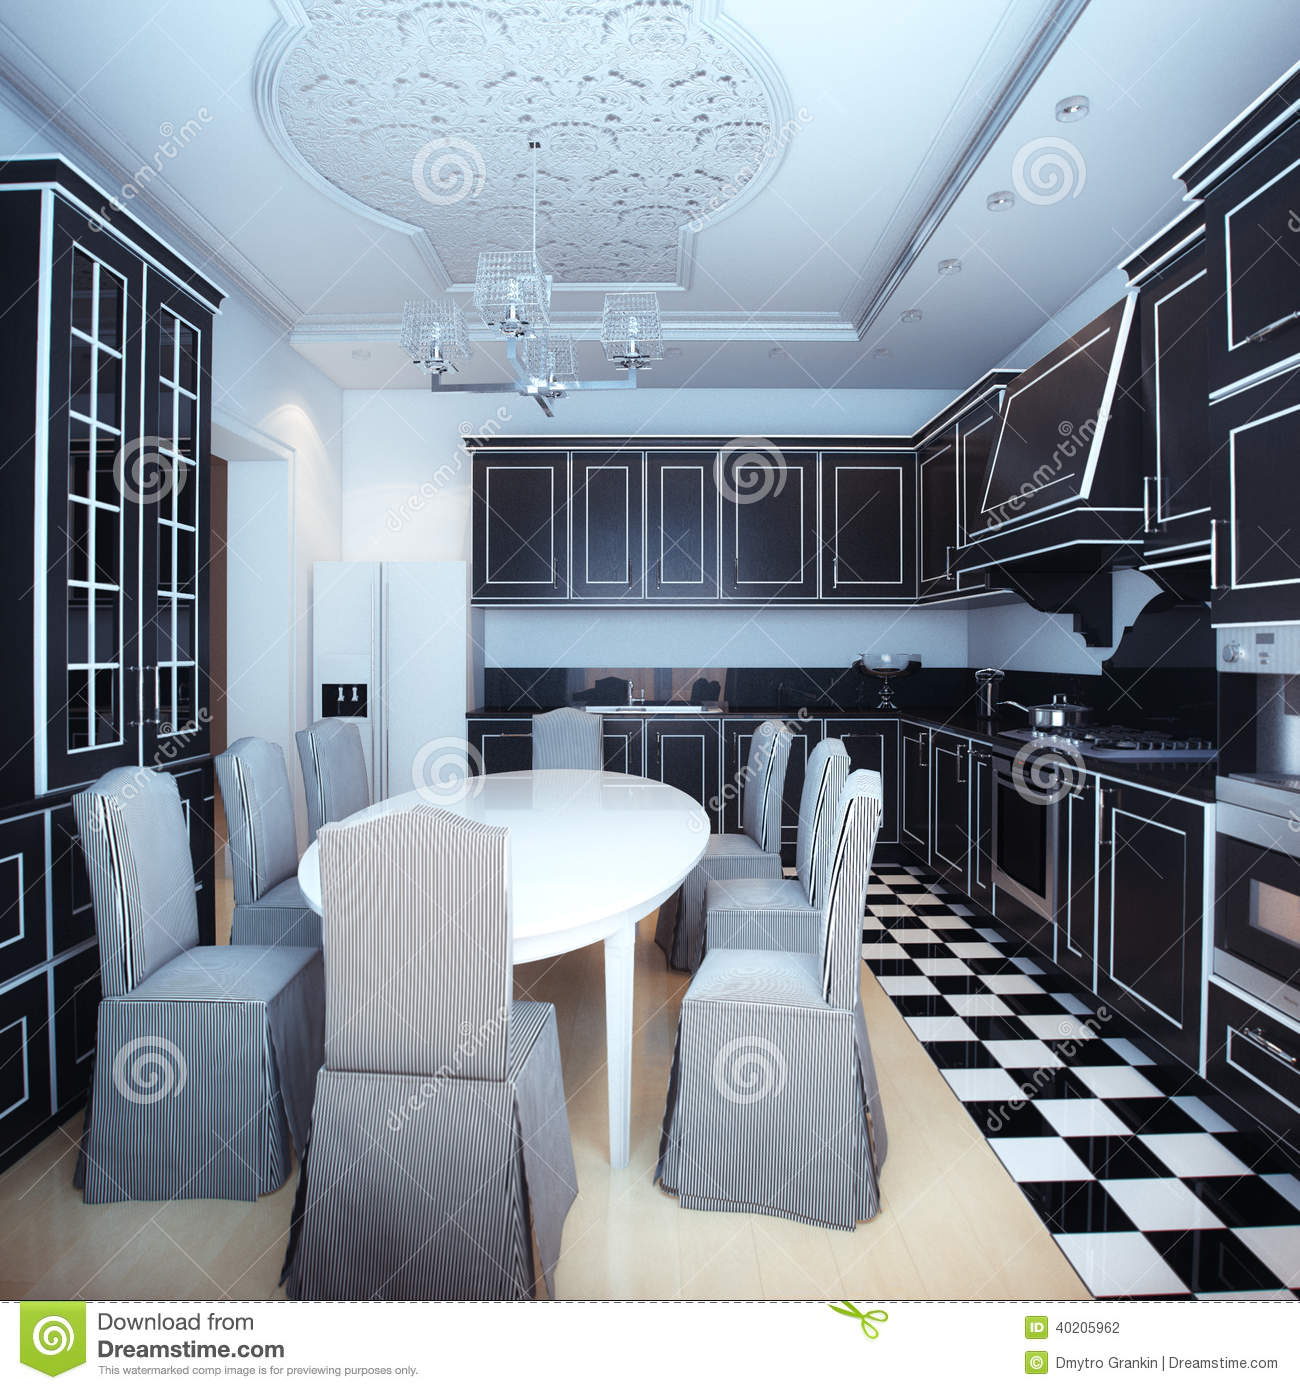 Black and white kitchen interior with dining area stock for Dining area interior